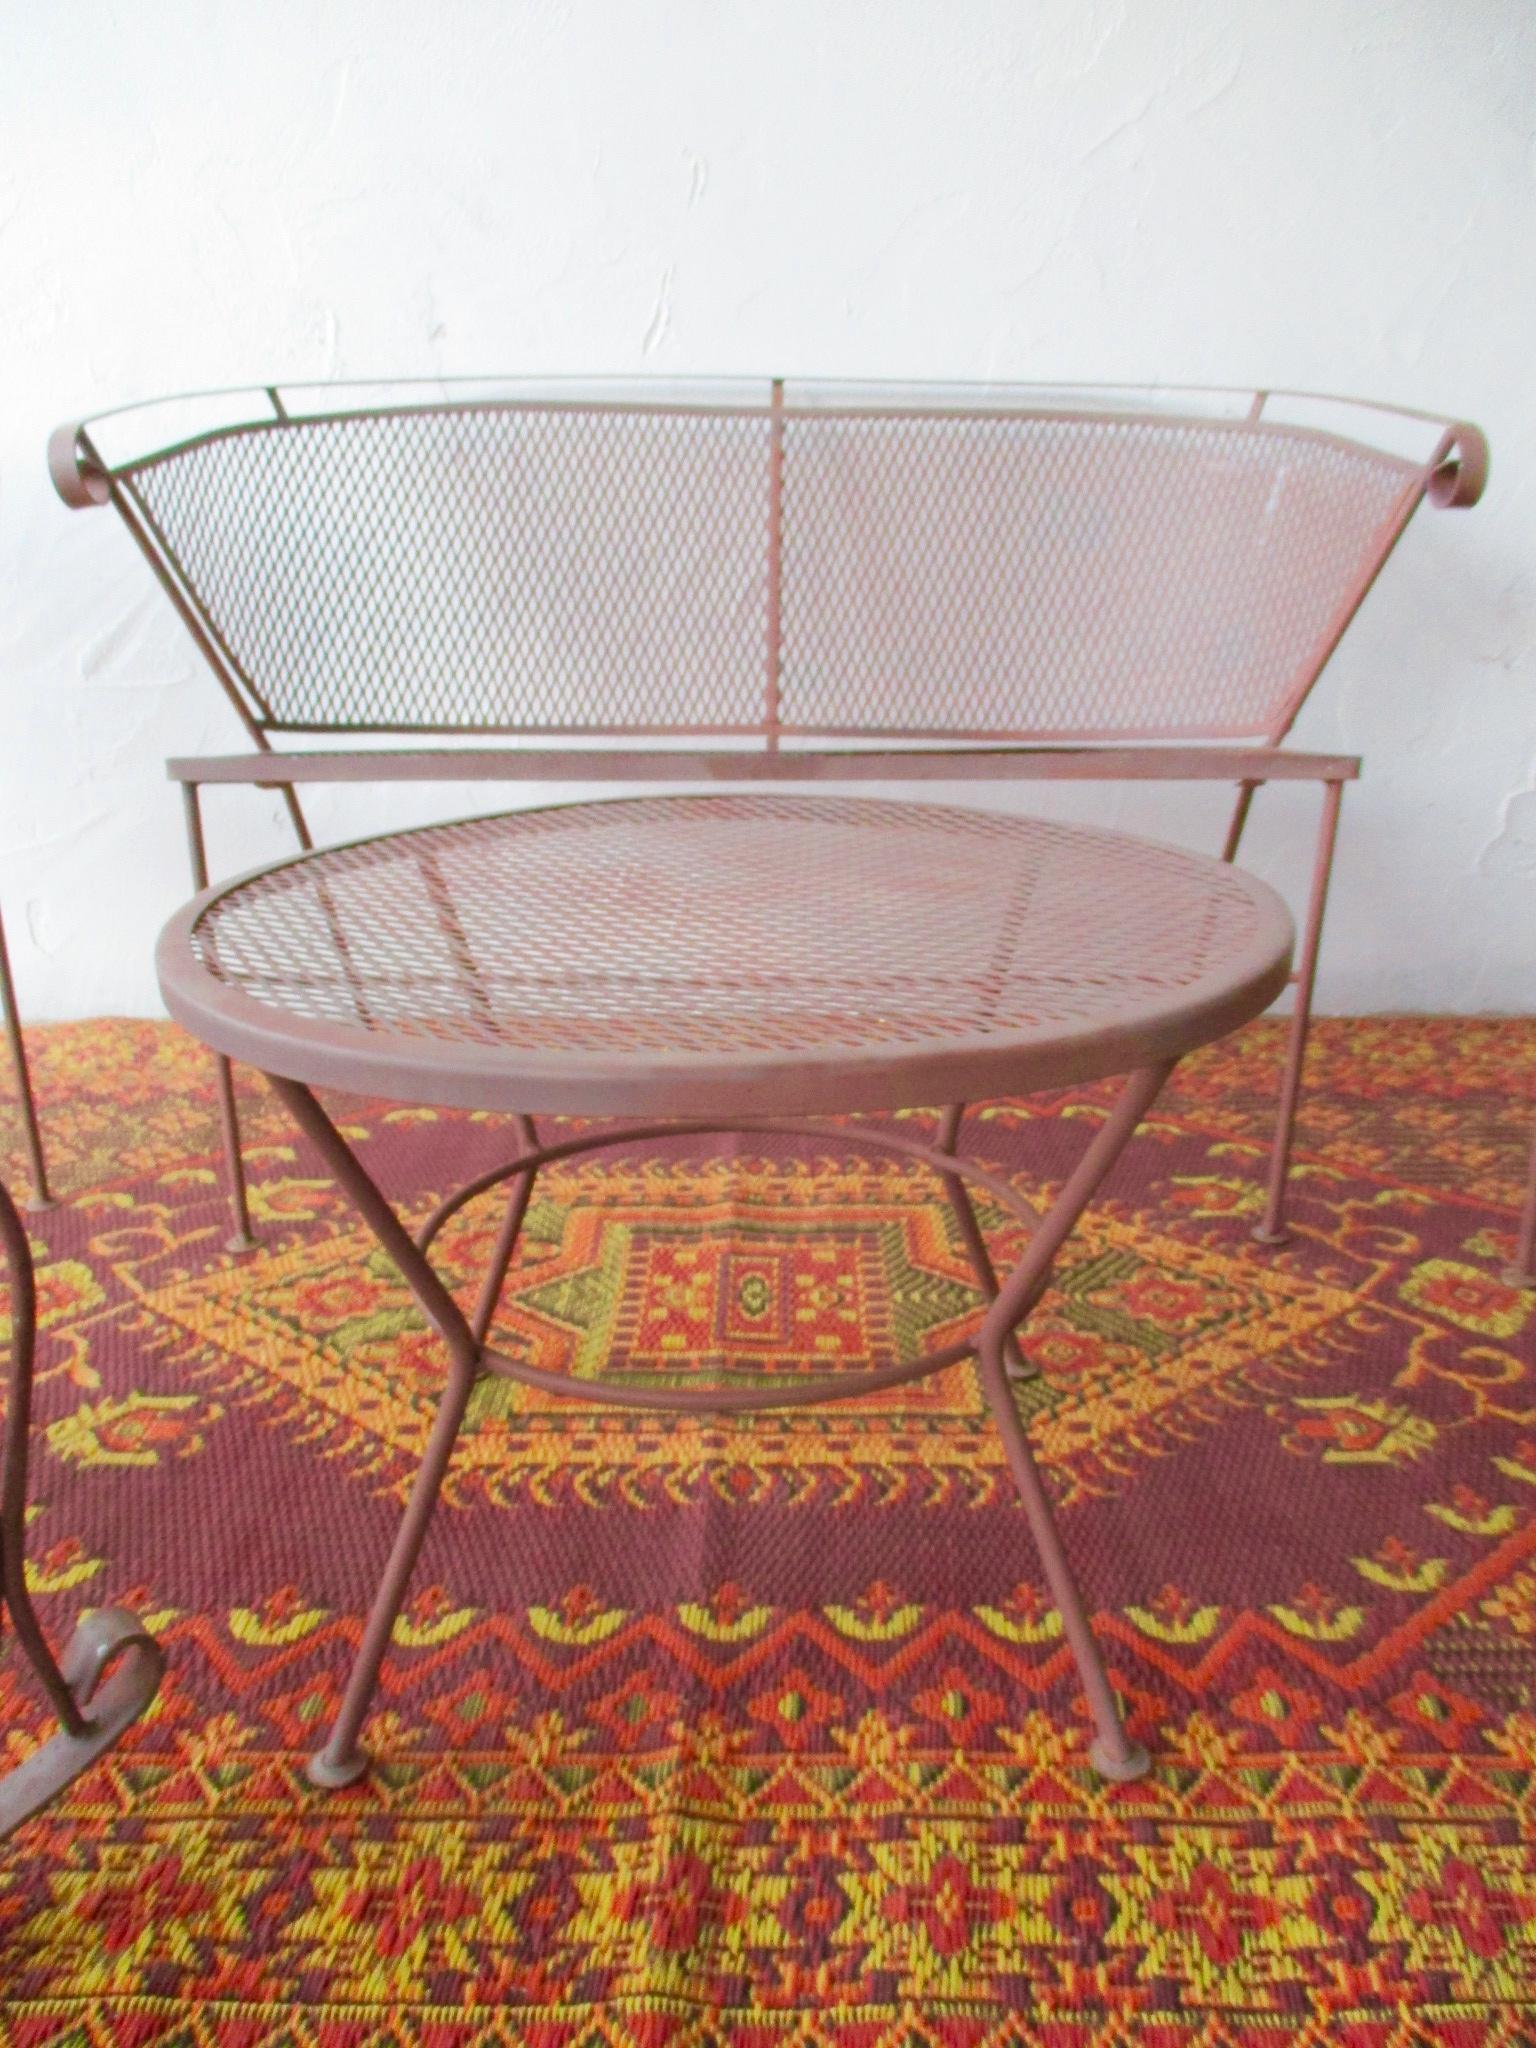 1950s Vintage Mid Century Wire Mesh Patio Round Table Furniture   Image 4  Of 7